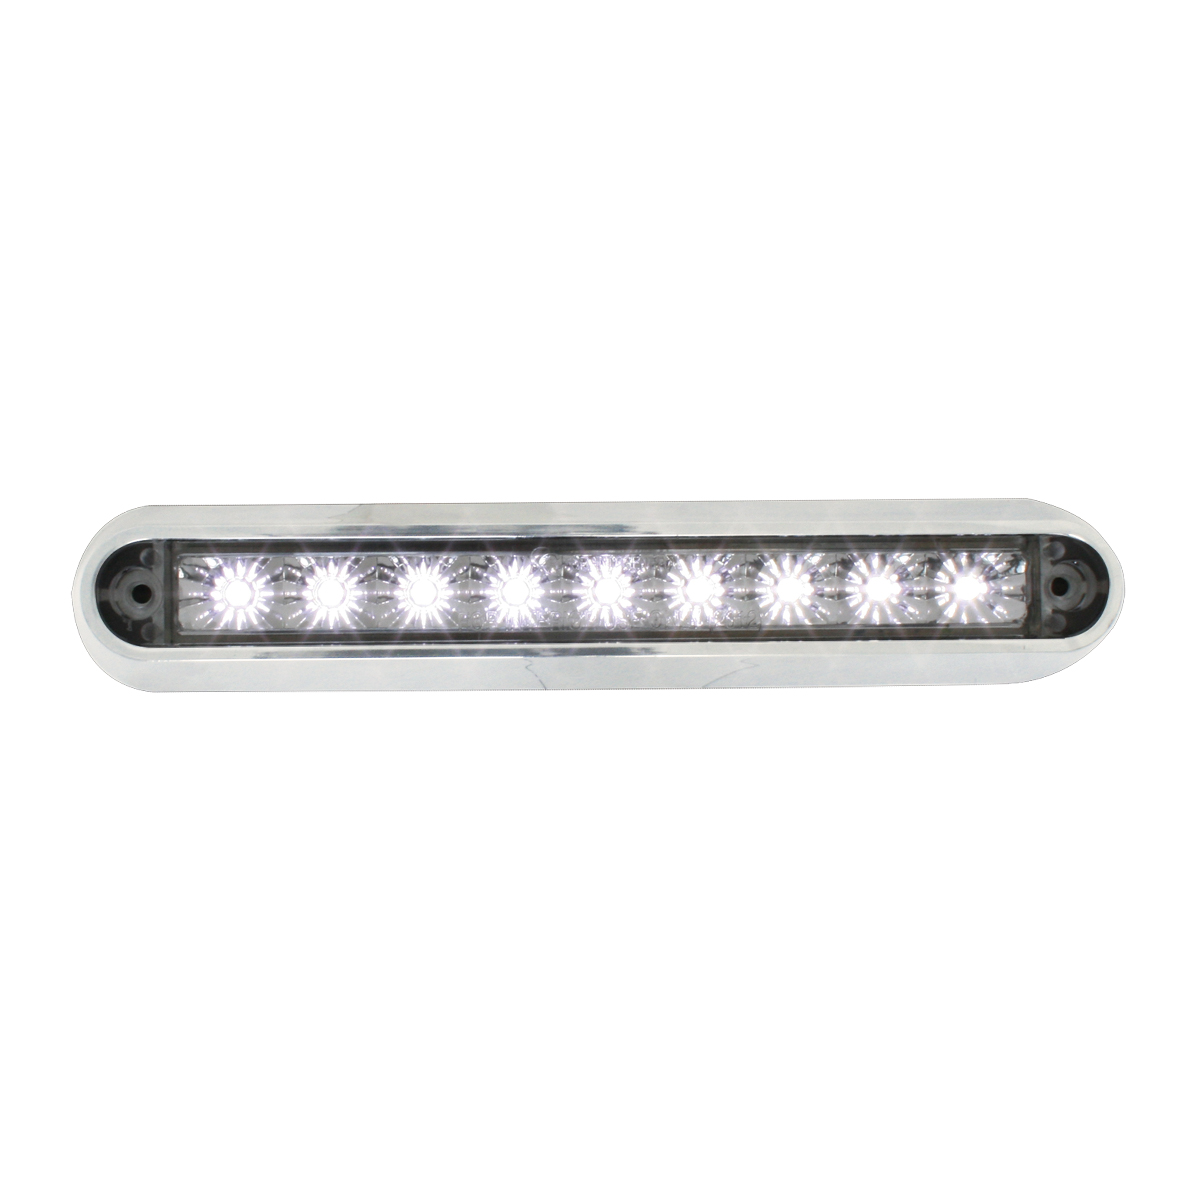 "76094 6.5"" Surface Mount LED Light Bar w/ Chrome Plastic Base"